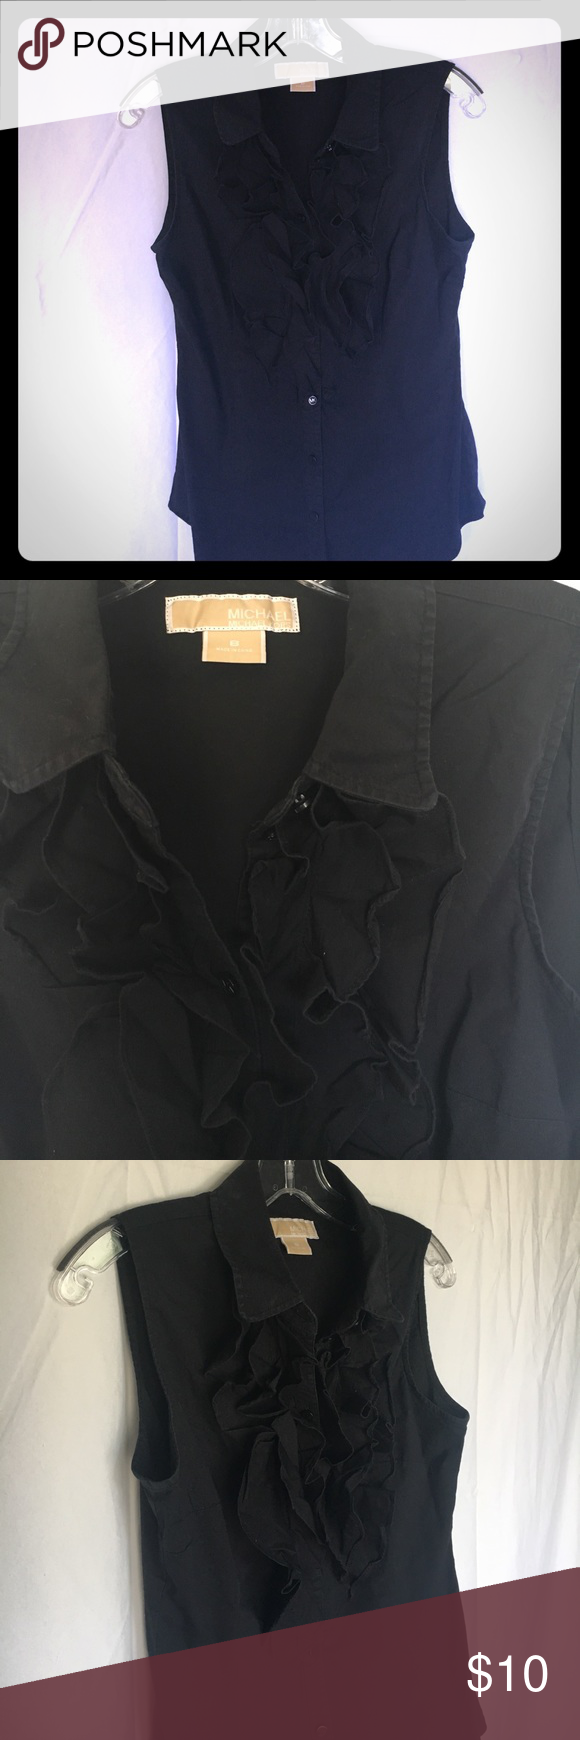 Michael Kors Black sleeveless button down This topic perfect for that business casual look with great ruffles placed in the front of the shirt the all black top is great with cardigans penny itself! MICHAEL Michael Kors Tops Button Down Shirts